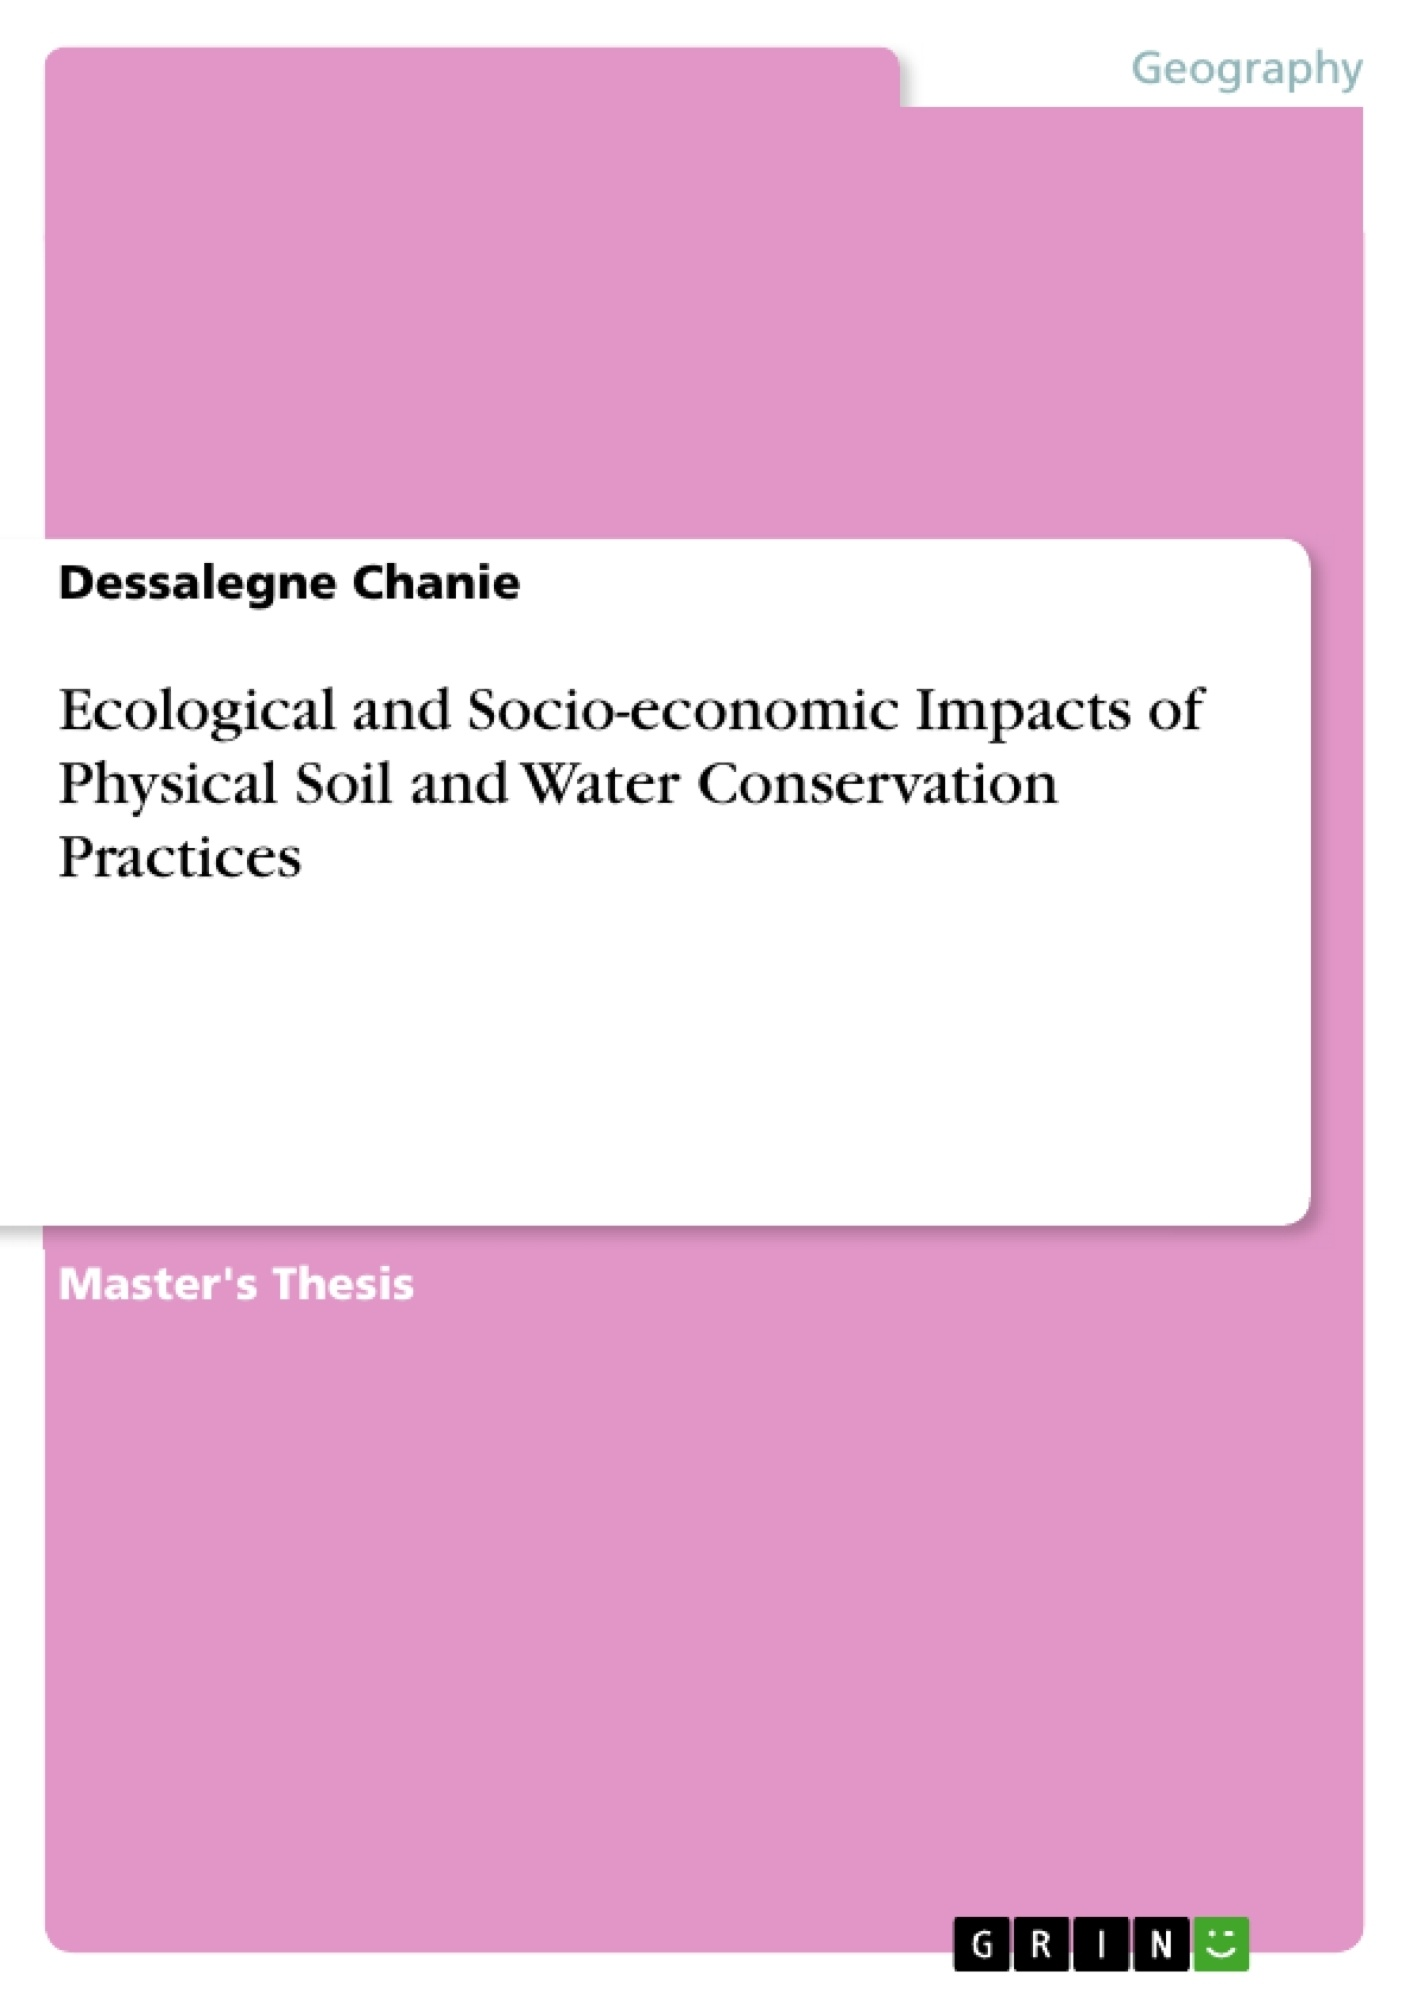 Title: Ecological and Socio-economic Impacts of Physical Soil and Water Conservation Practices